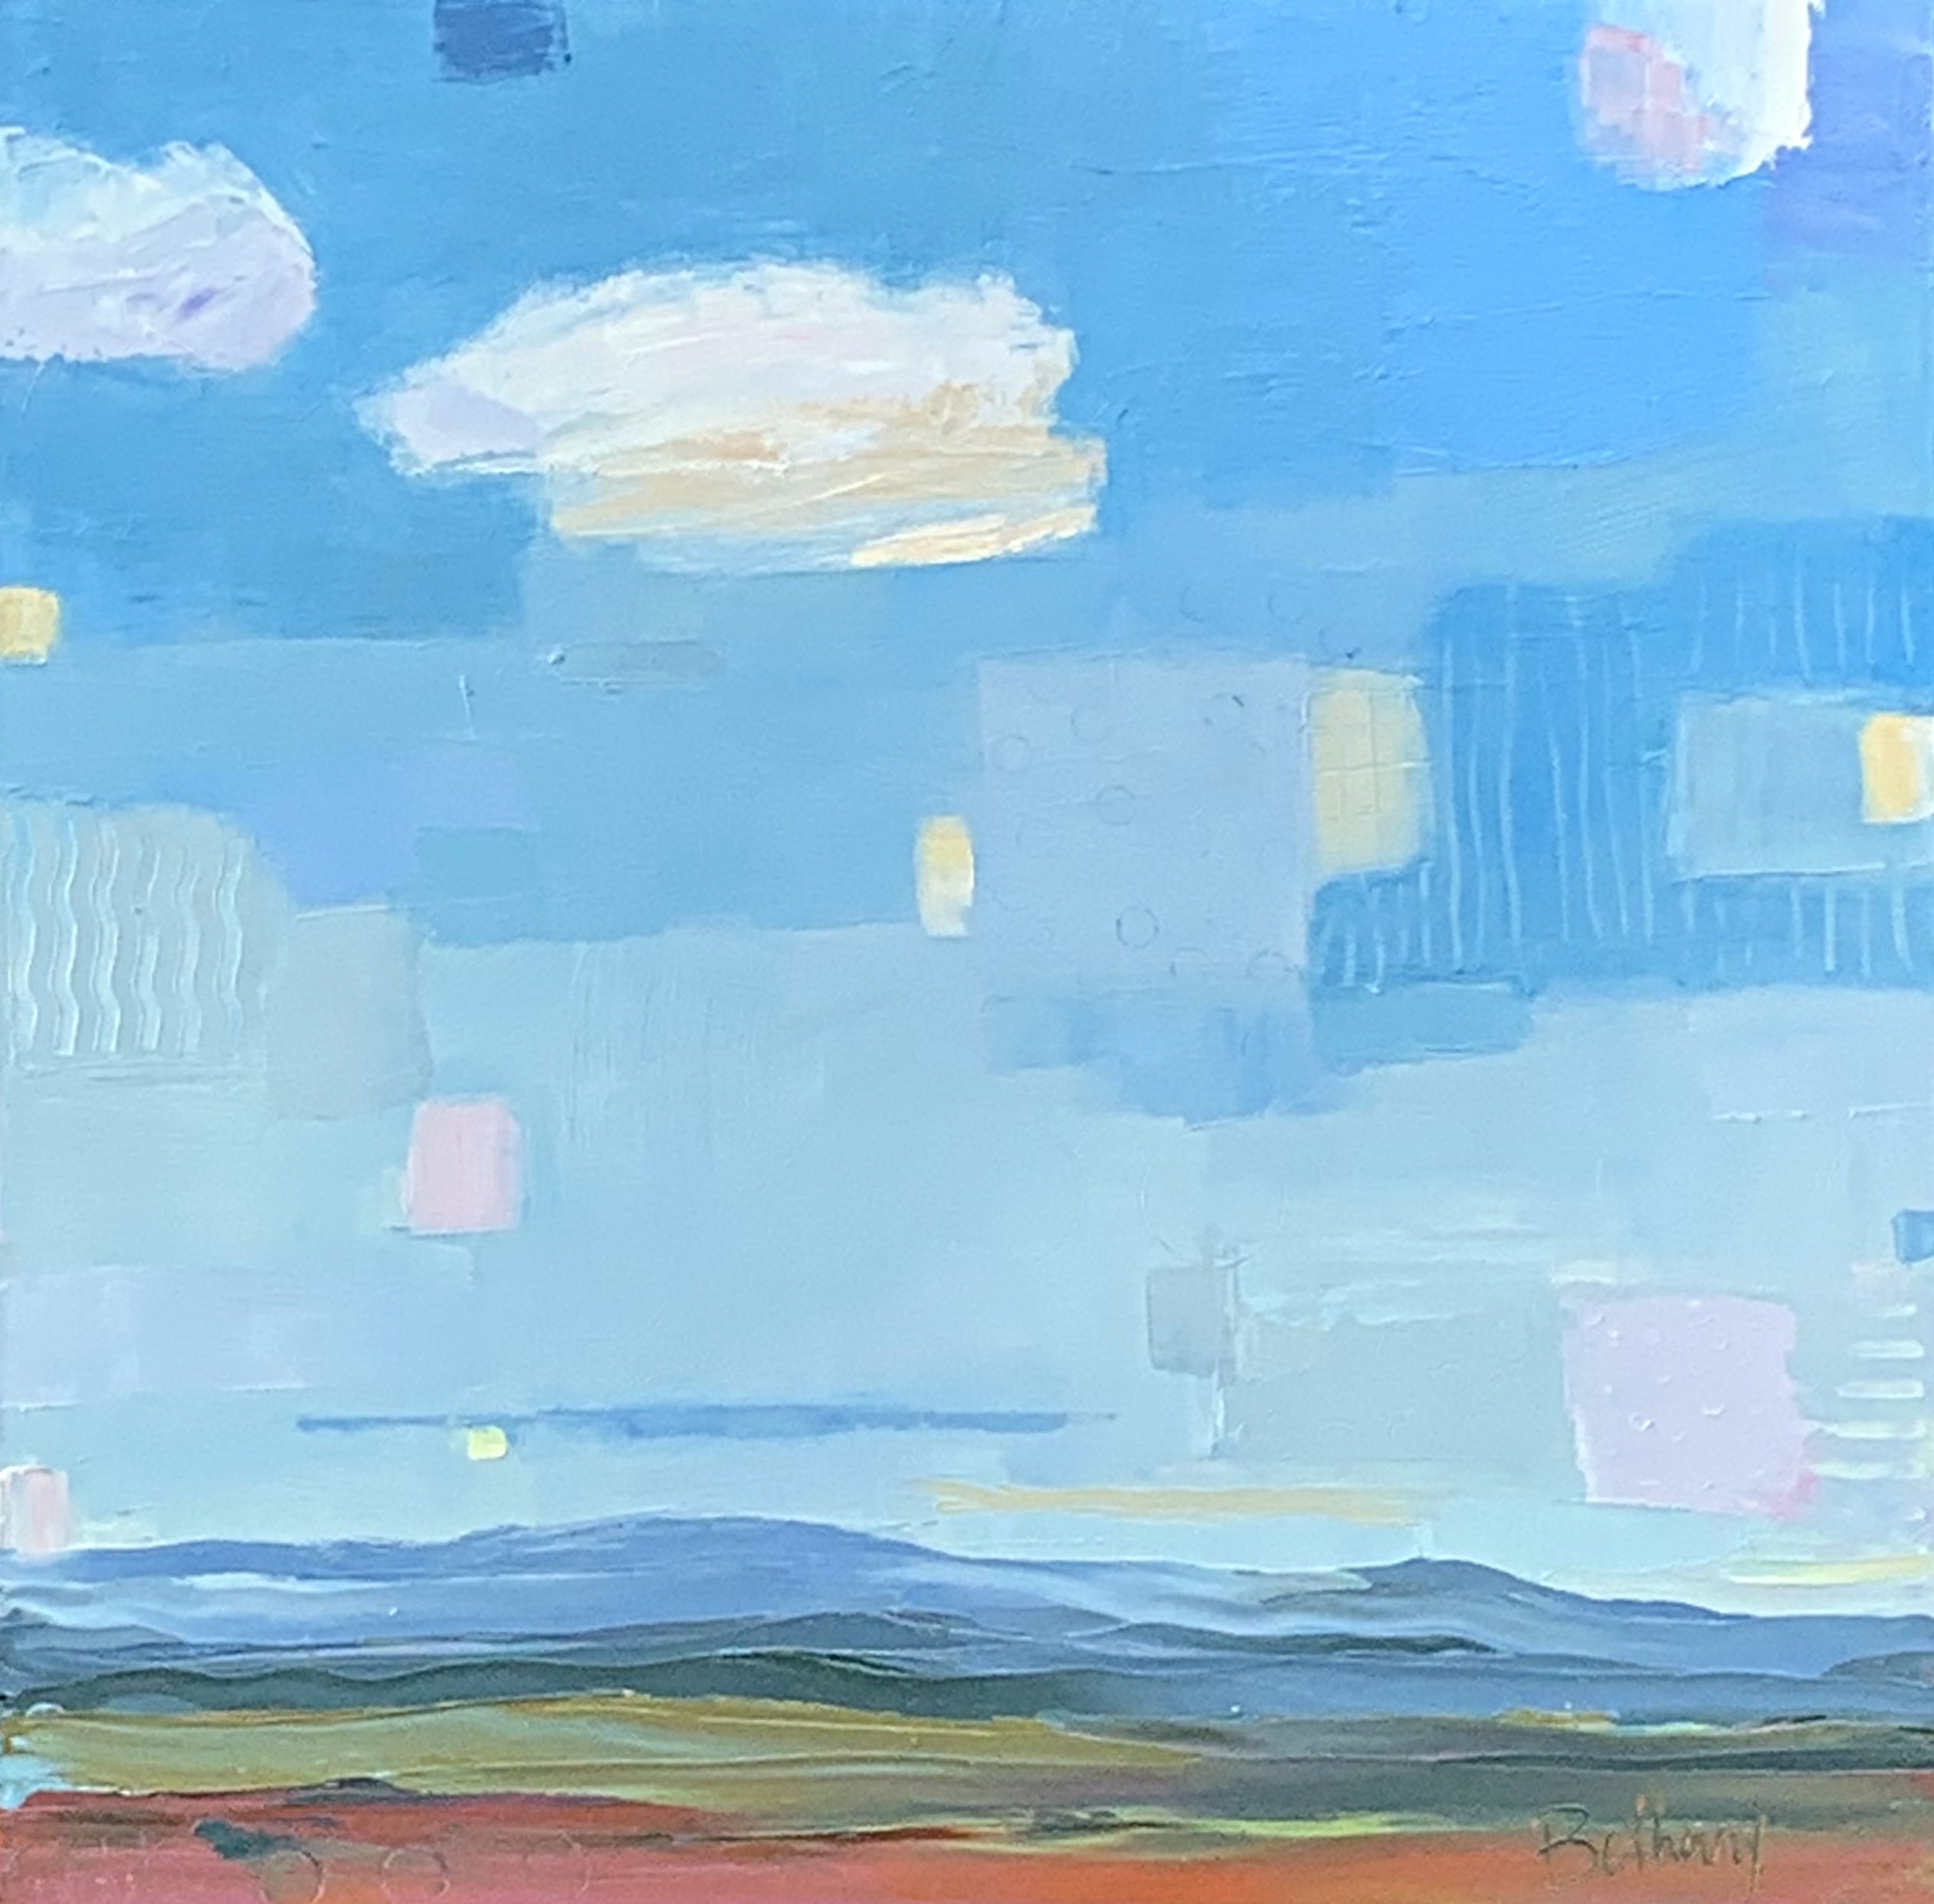 Wonder in the Clouds, landscape oil painting by Bethany Harper Williams   Effusion Art Gallery + Glass Studio, Invermere BC